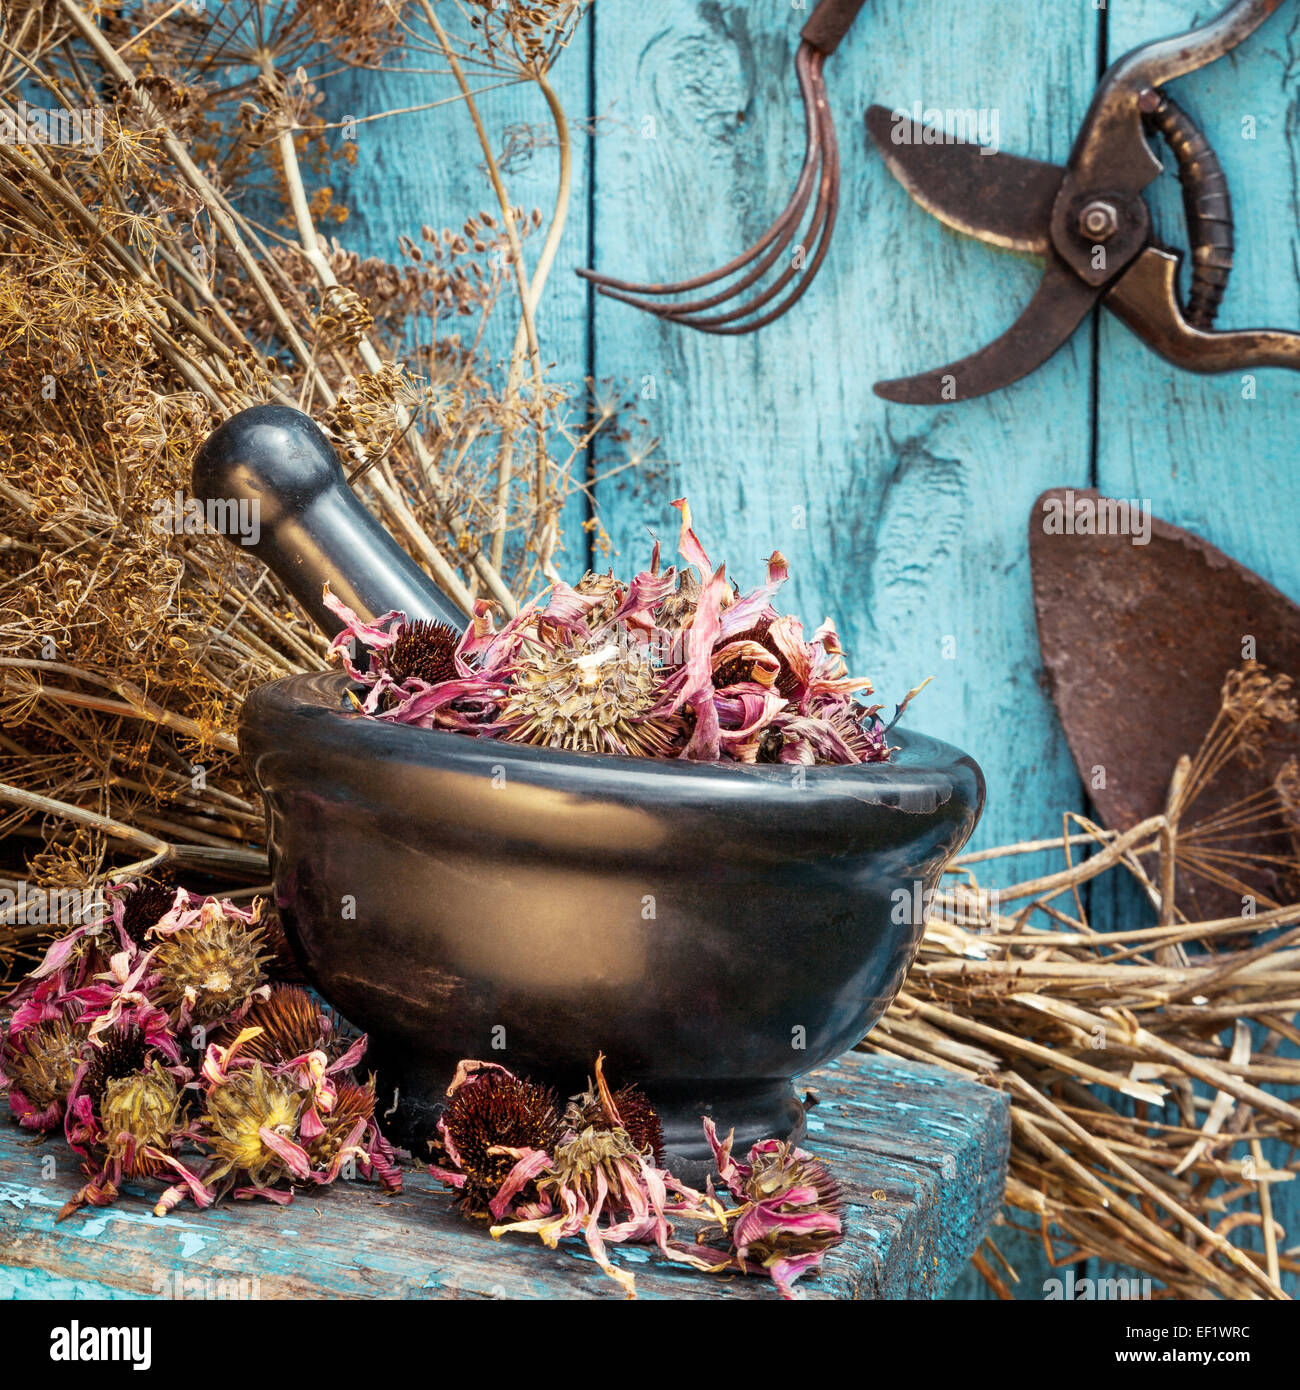 Dried Herbs Hanging Stock Photos & Dried Herbs Hanging Stock Images ...